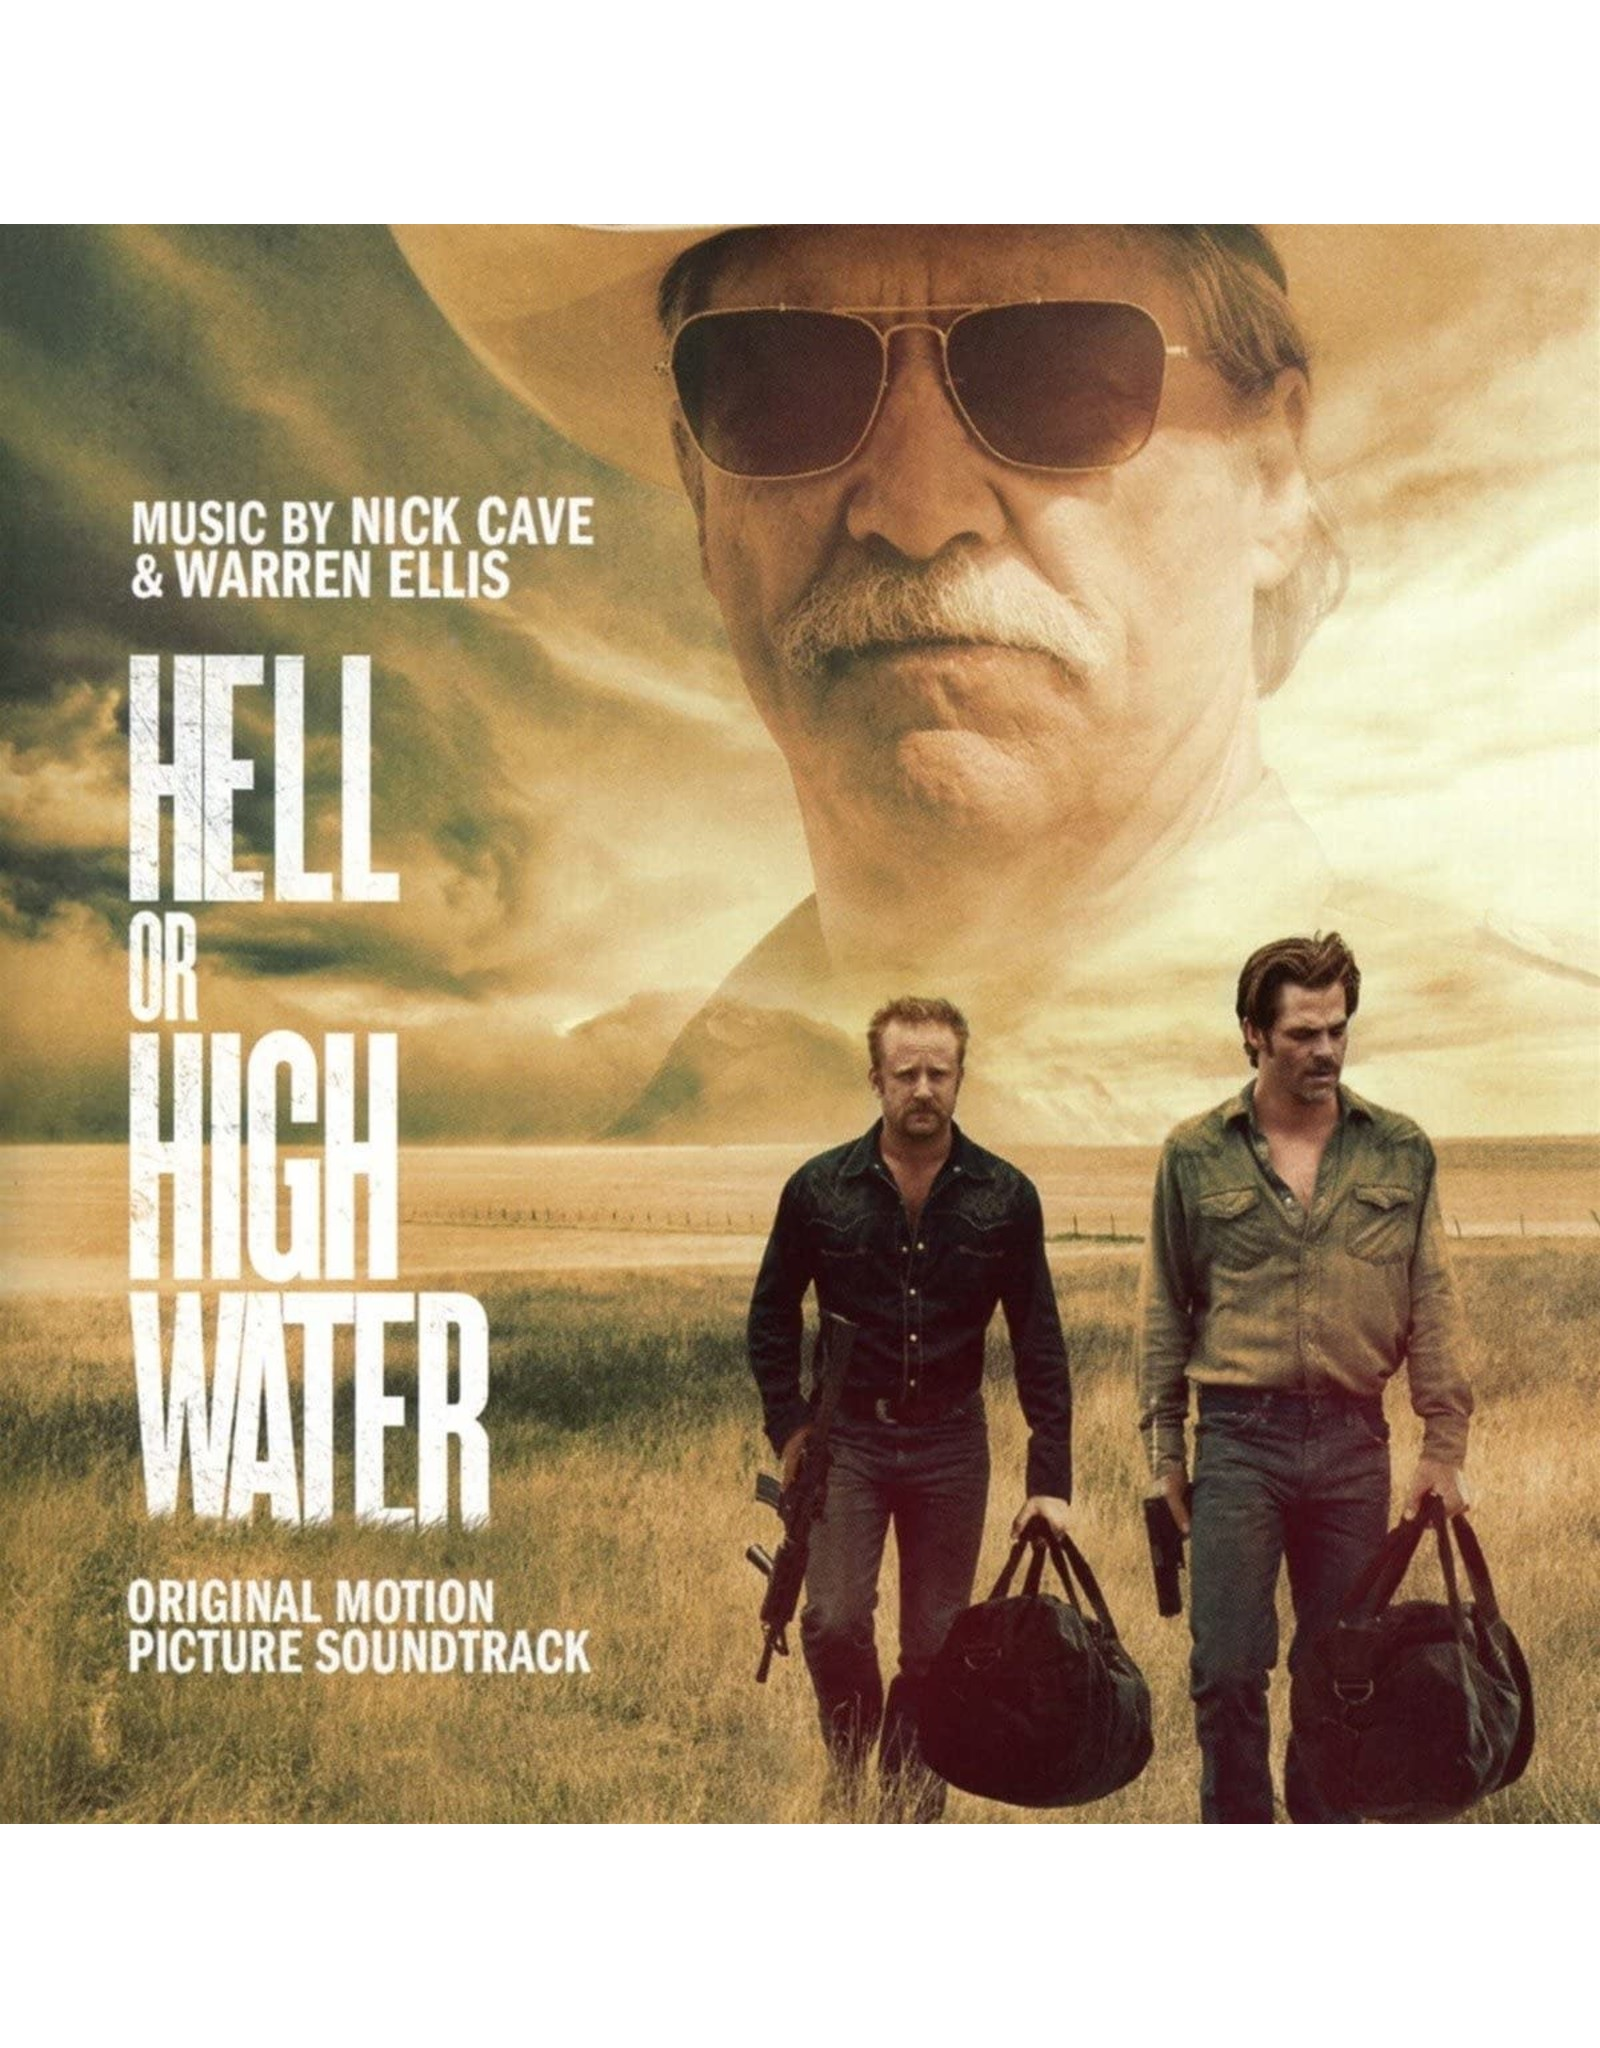 Cave, Nick and Warren Ellis - Hell or High Water OST LP